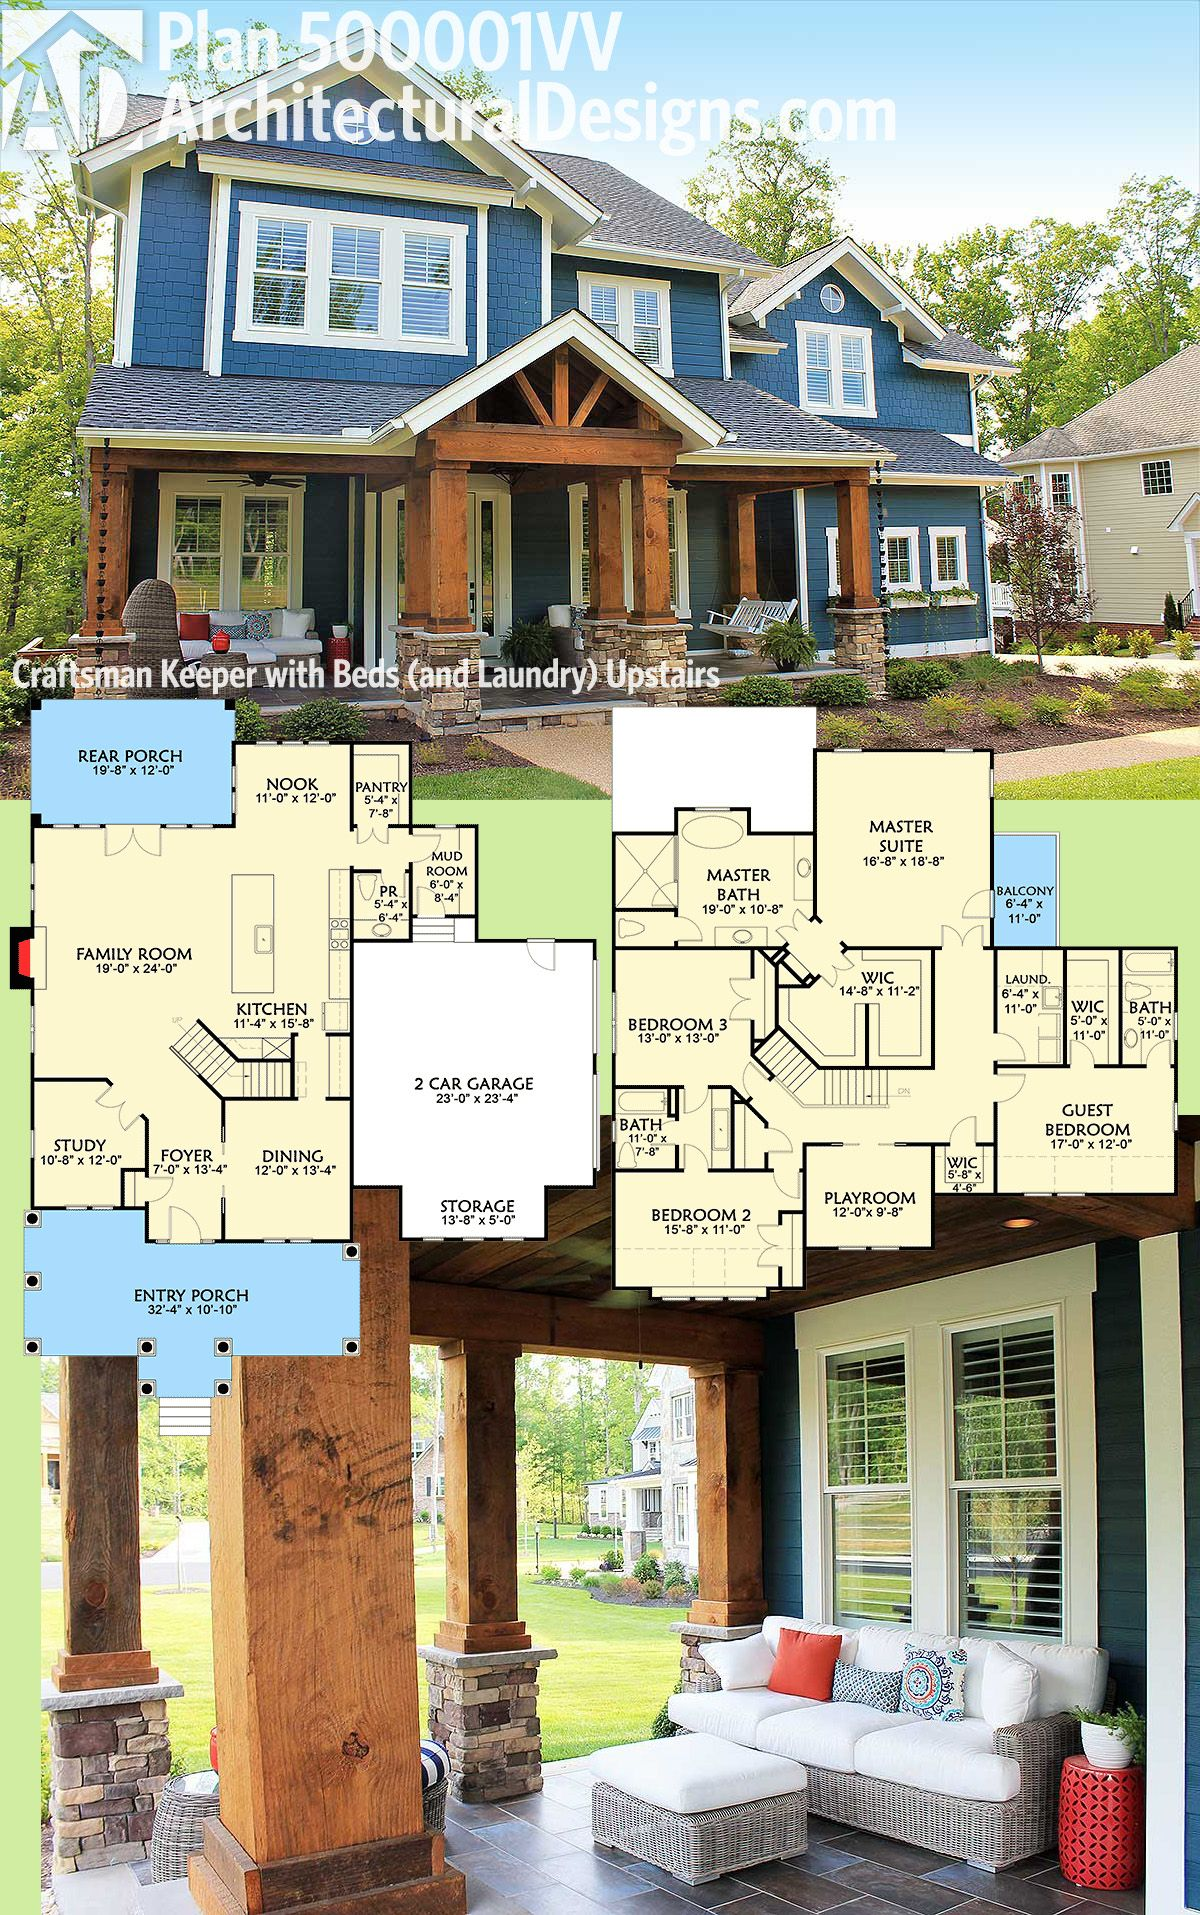 Plan 500001vv craftsman keeper with beds and laundry for Upstairs plans